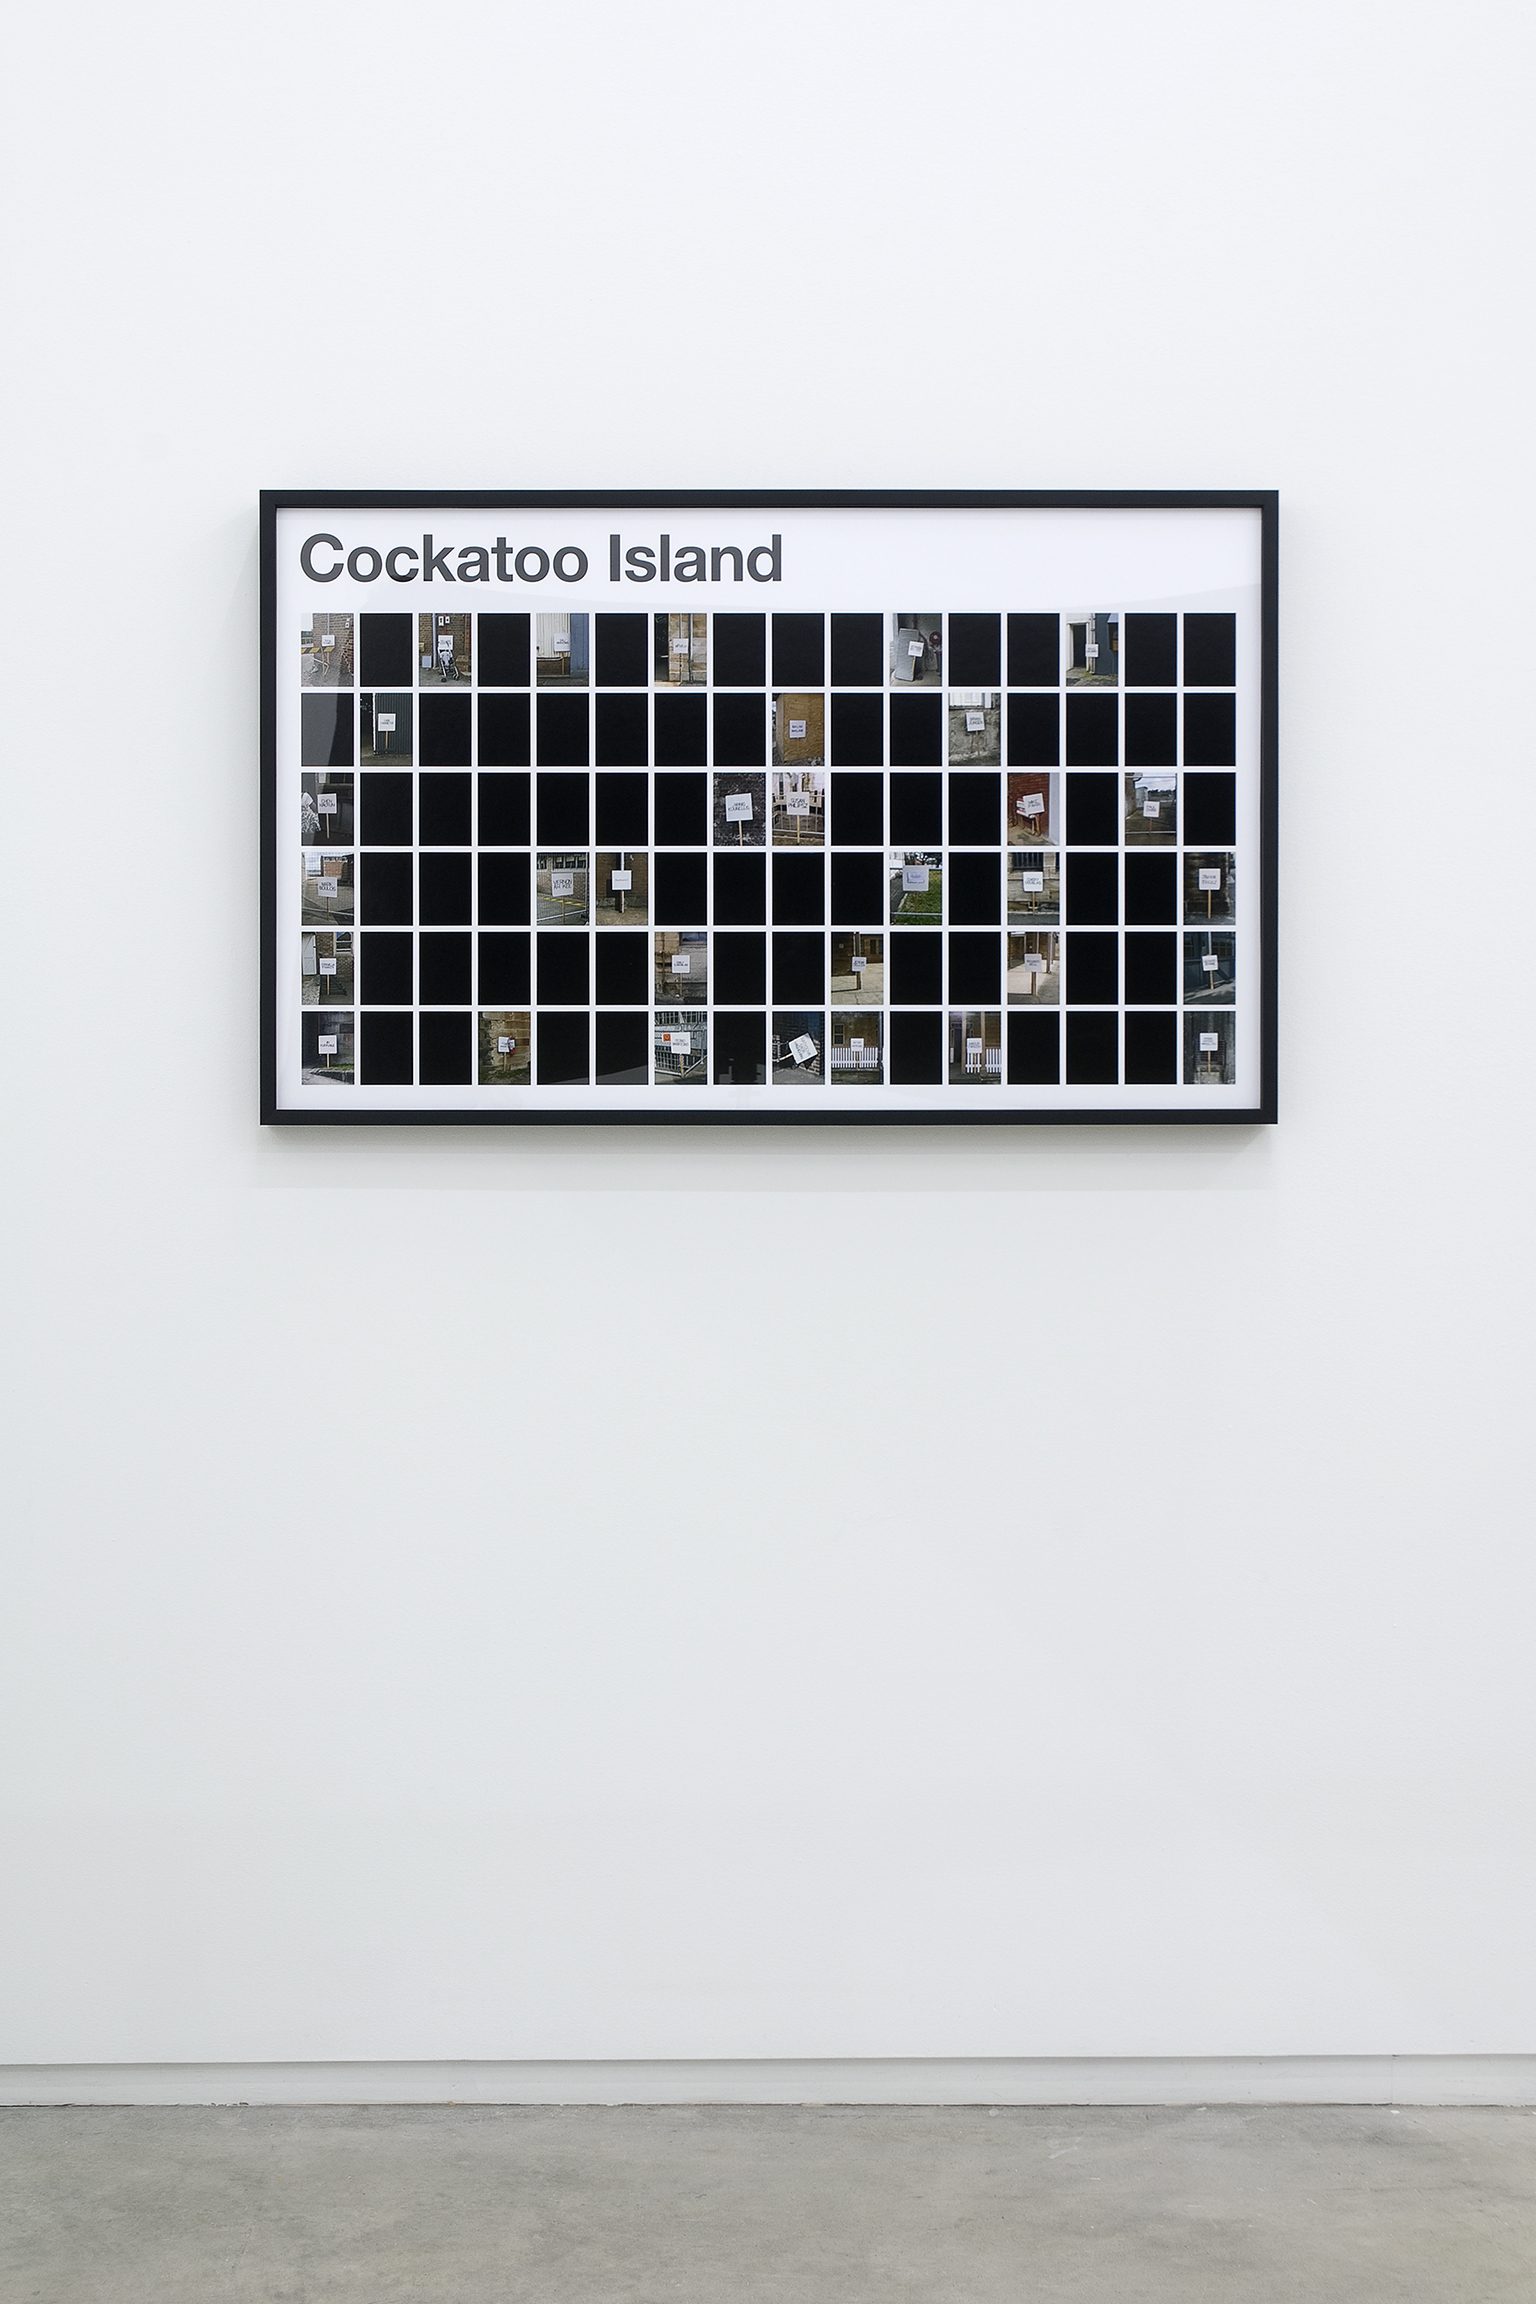 Ron Terada, Cockatoo Island, 2009, pigment ink print on archival paper, 26 x 42 in. (66 x 107 cm) by